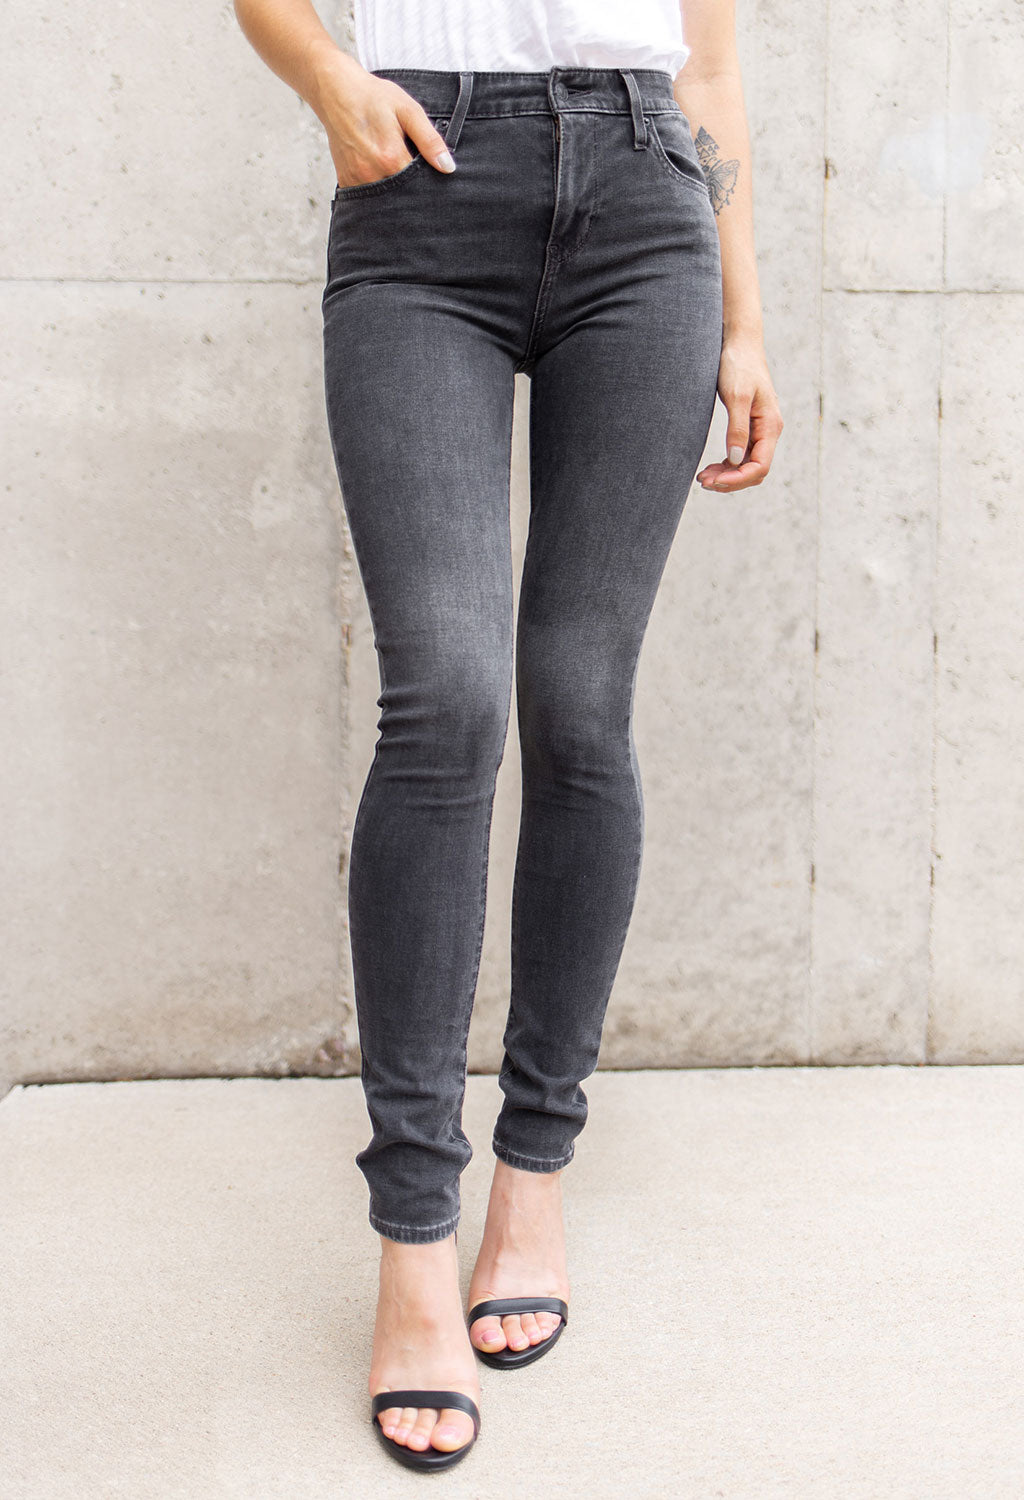 Levi's 721 High Rise Skinny, Black Wash - RUST & Co.